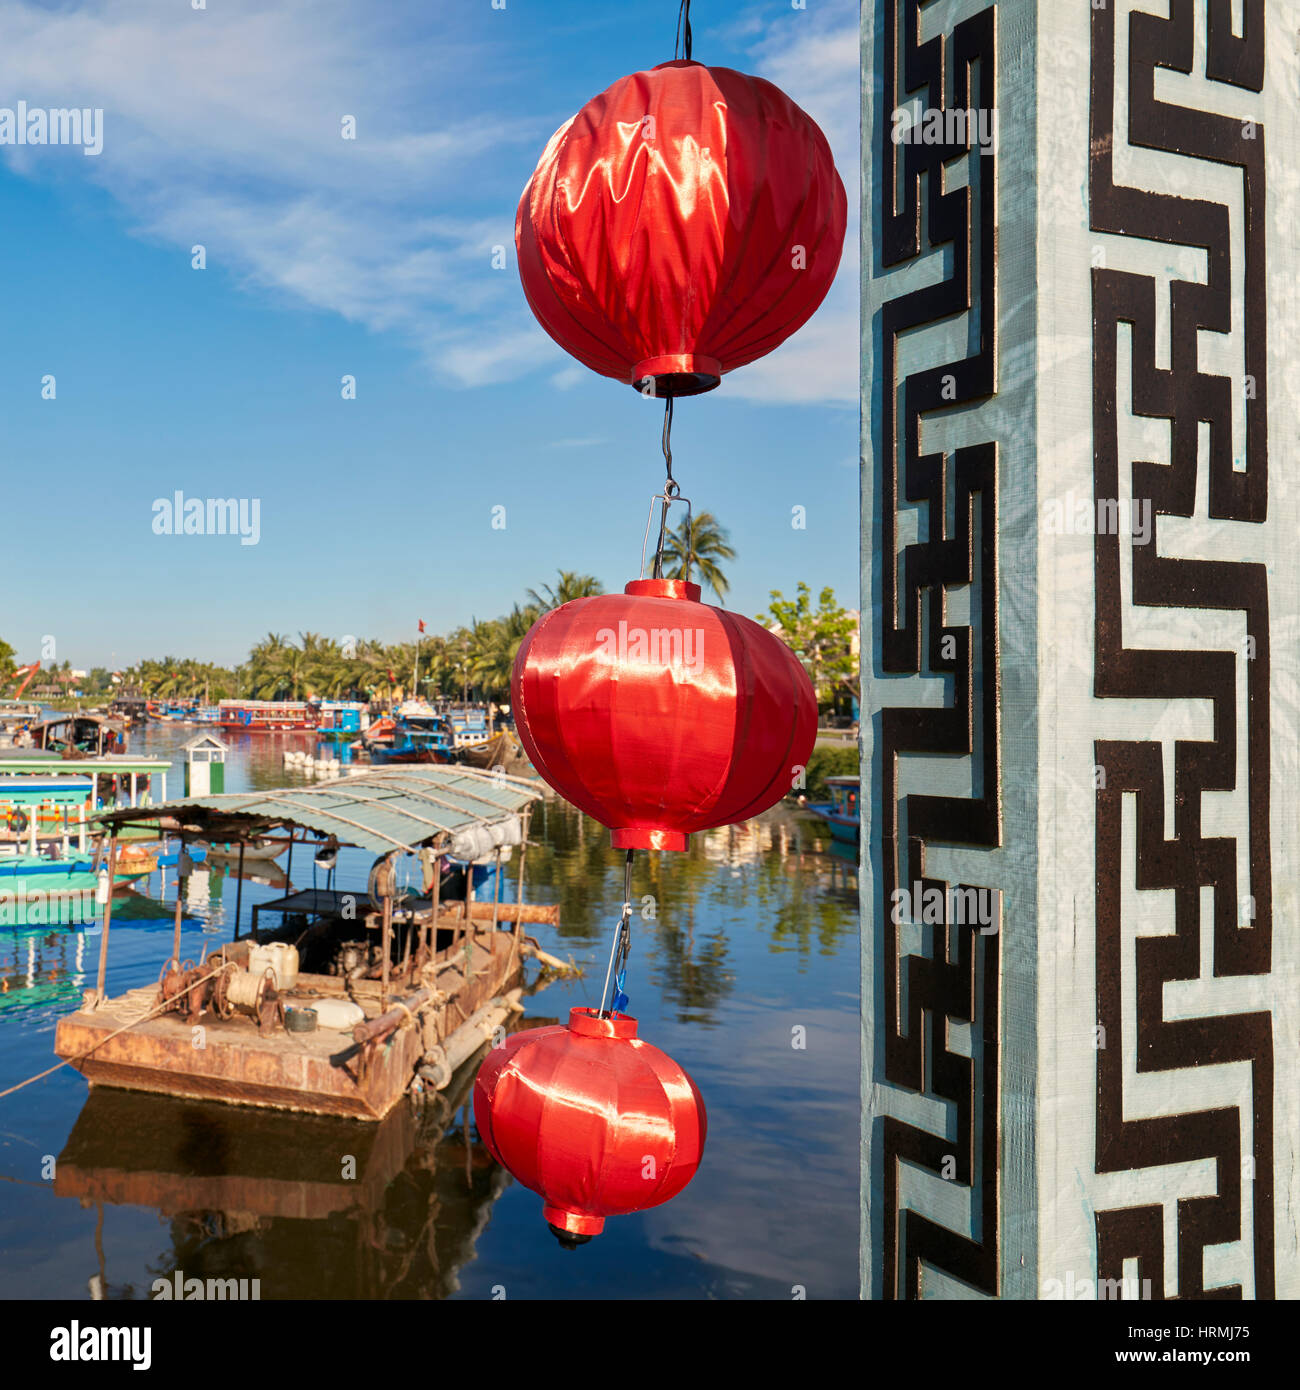 Lanterns on the Cau An Hoi Bridge. Hoi An, Quang Nam Province, Vietnam. - Stock Image